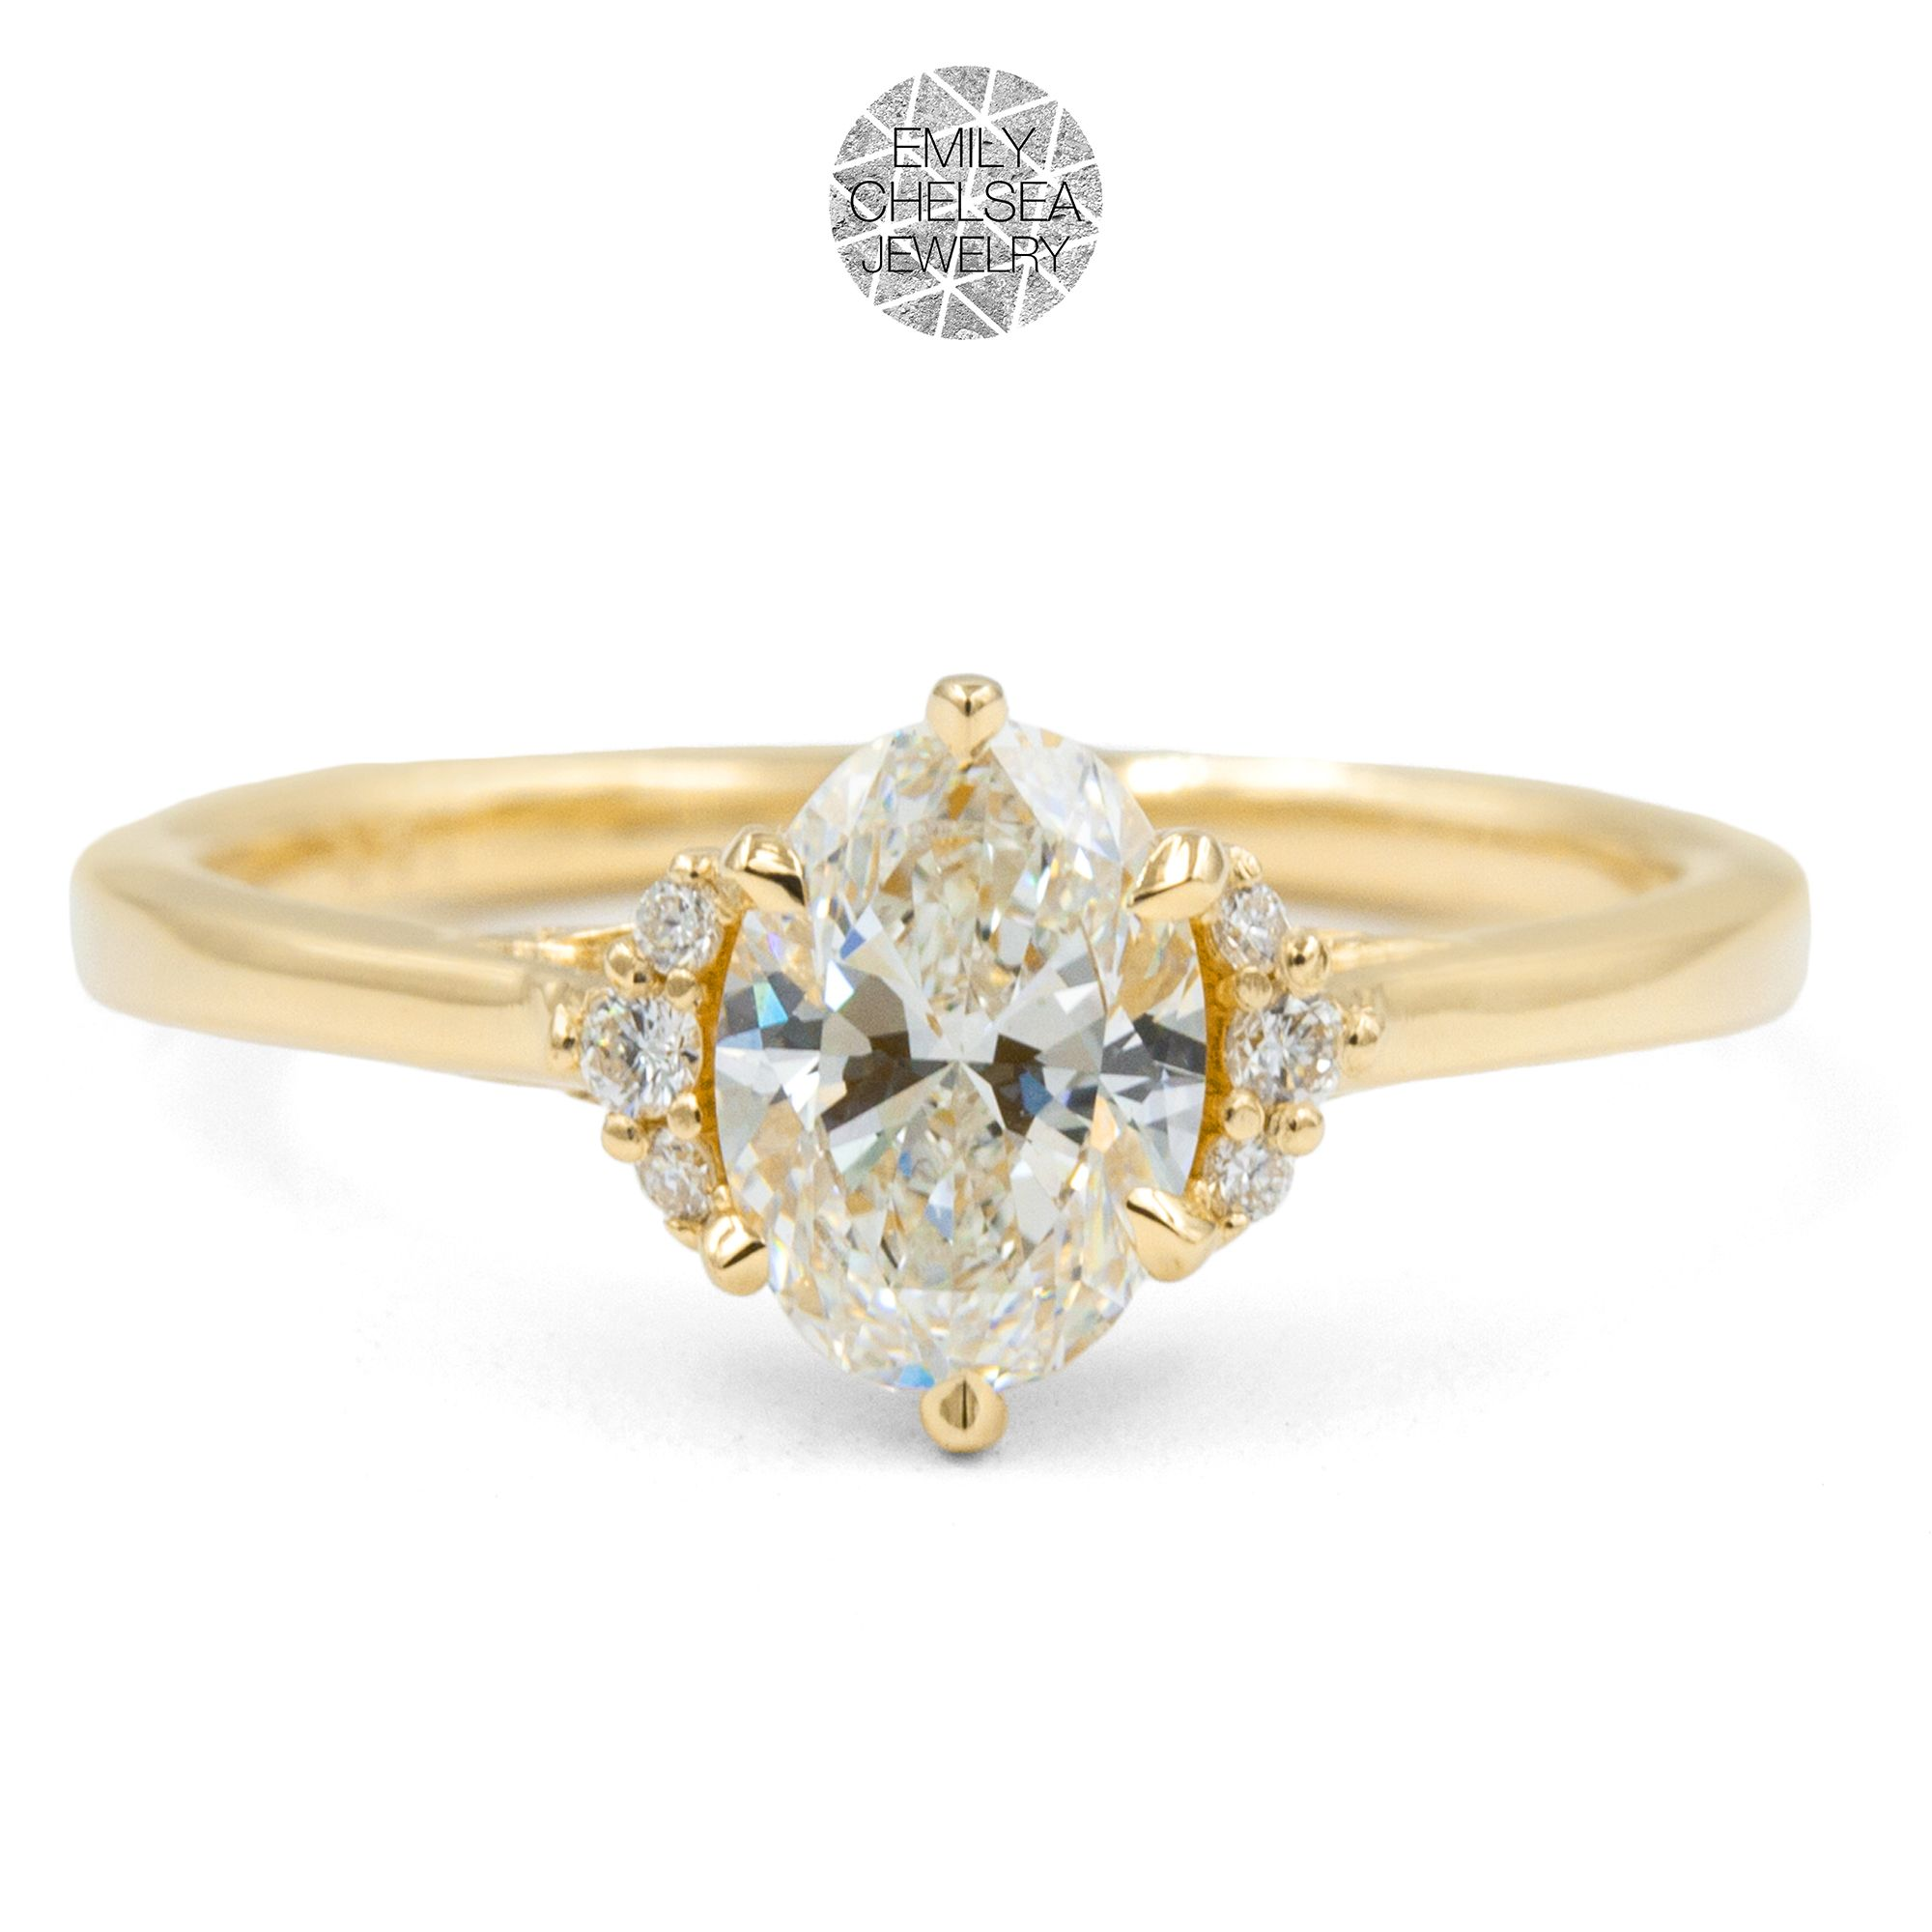 easily to could what calla sapphire divorce gold here engagement do design rings with diamond repurposed a take jewelry s and diamonds that pave